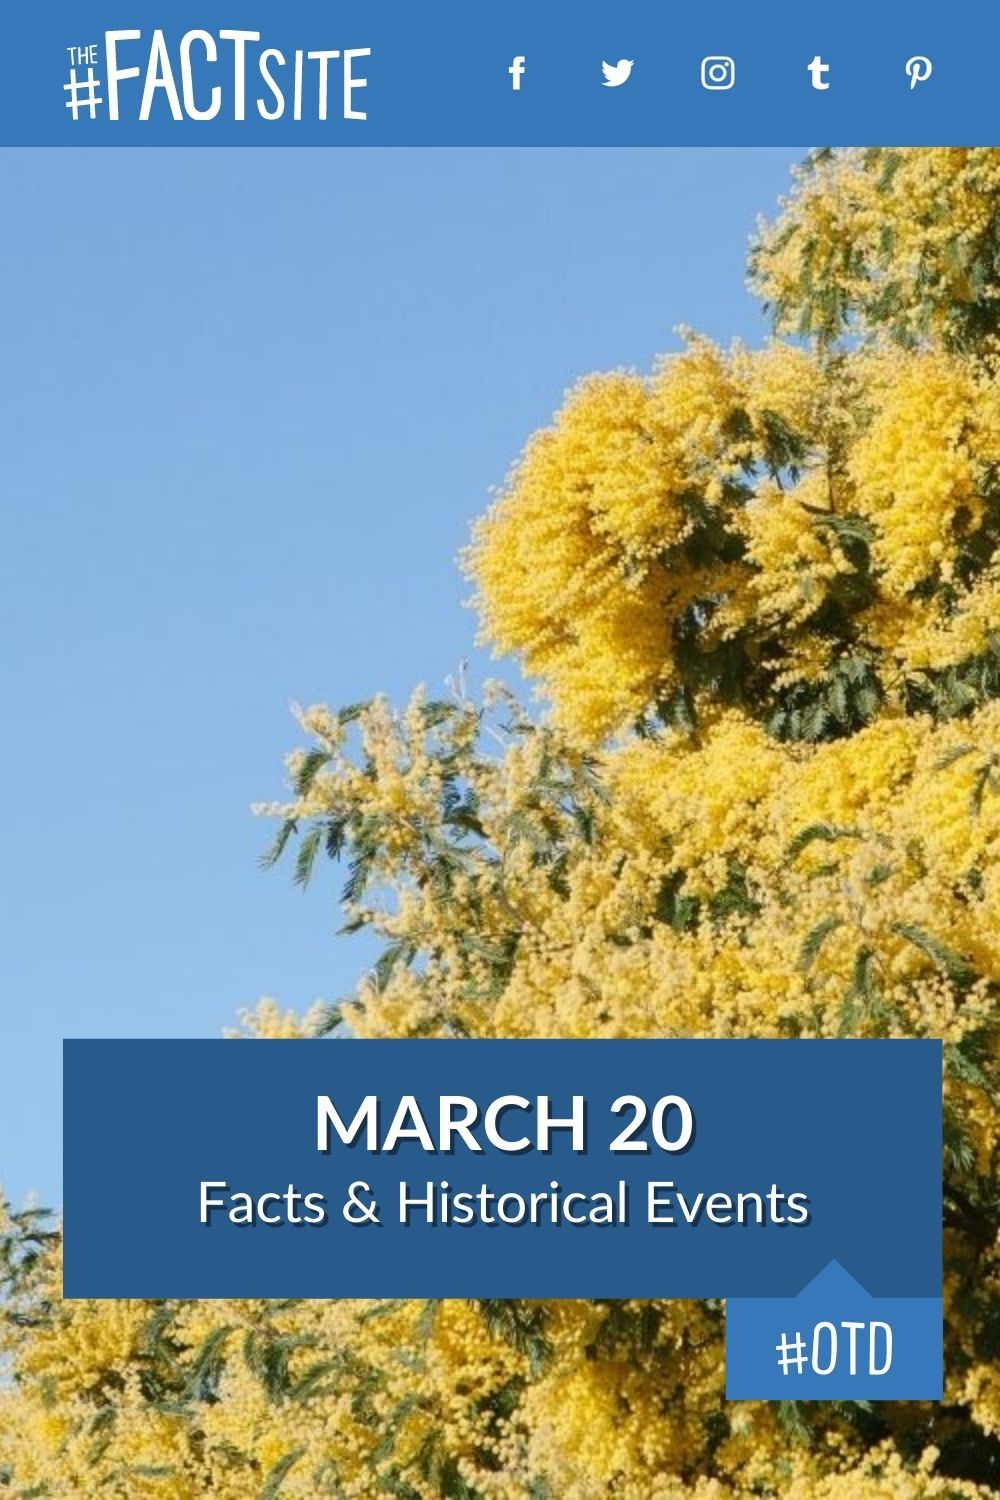 Facts & Historic Events That Happened on March 20